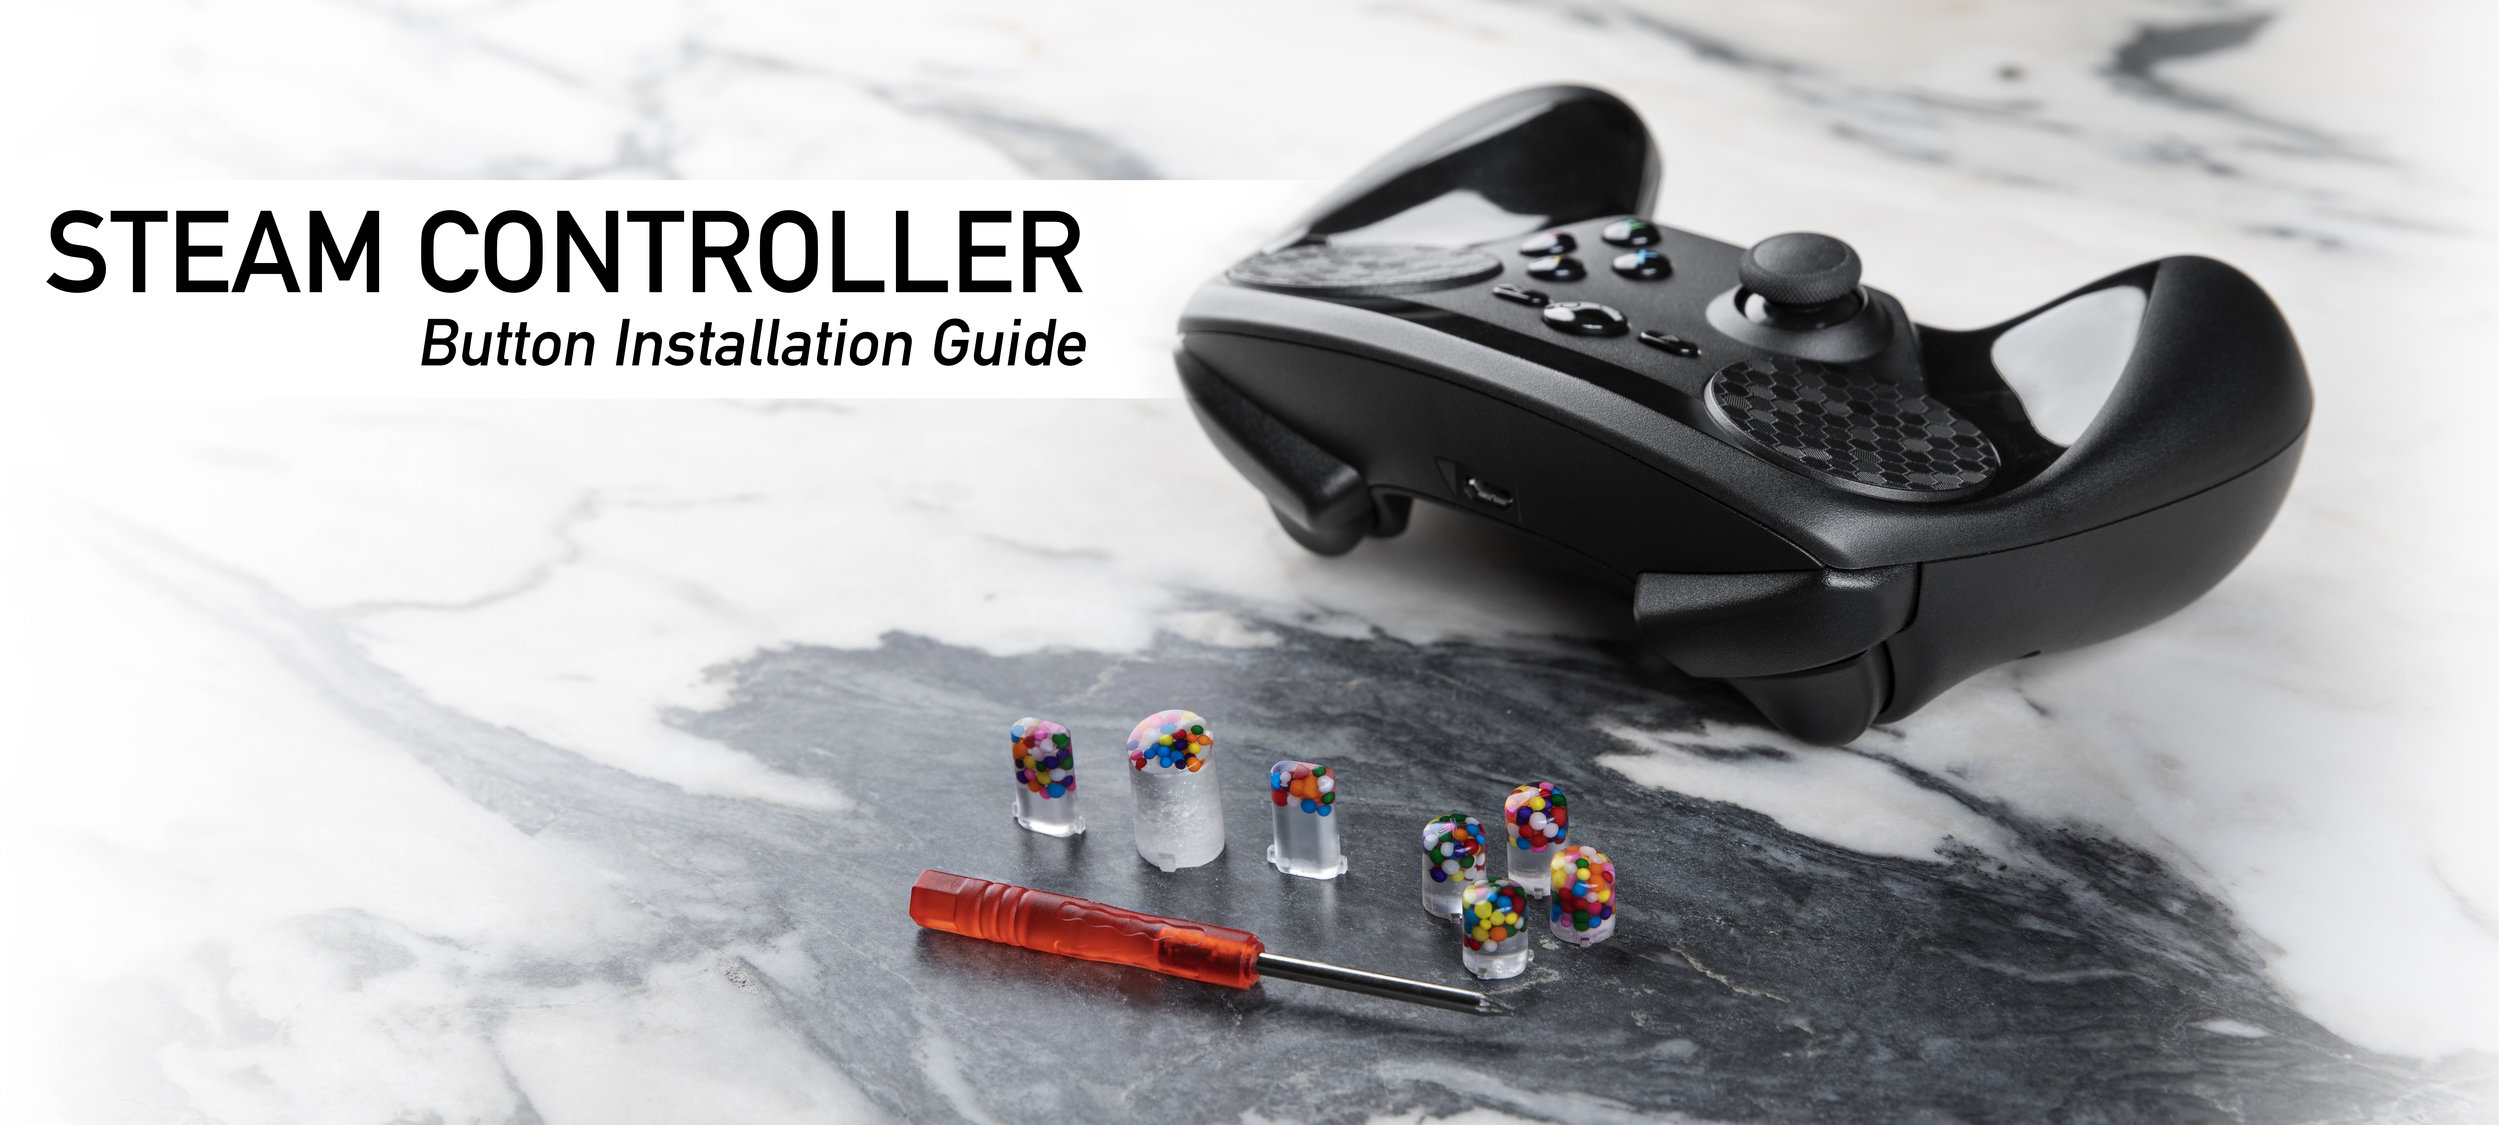 SteamControllerButtonInstallation